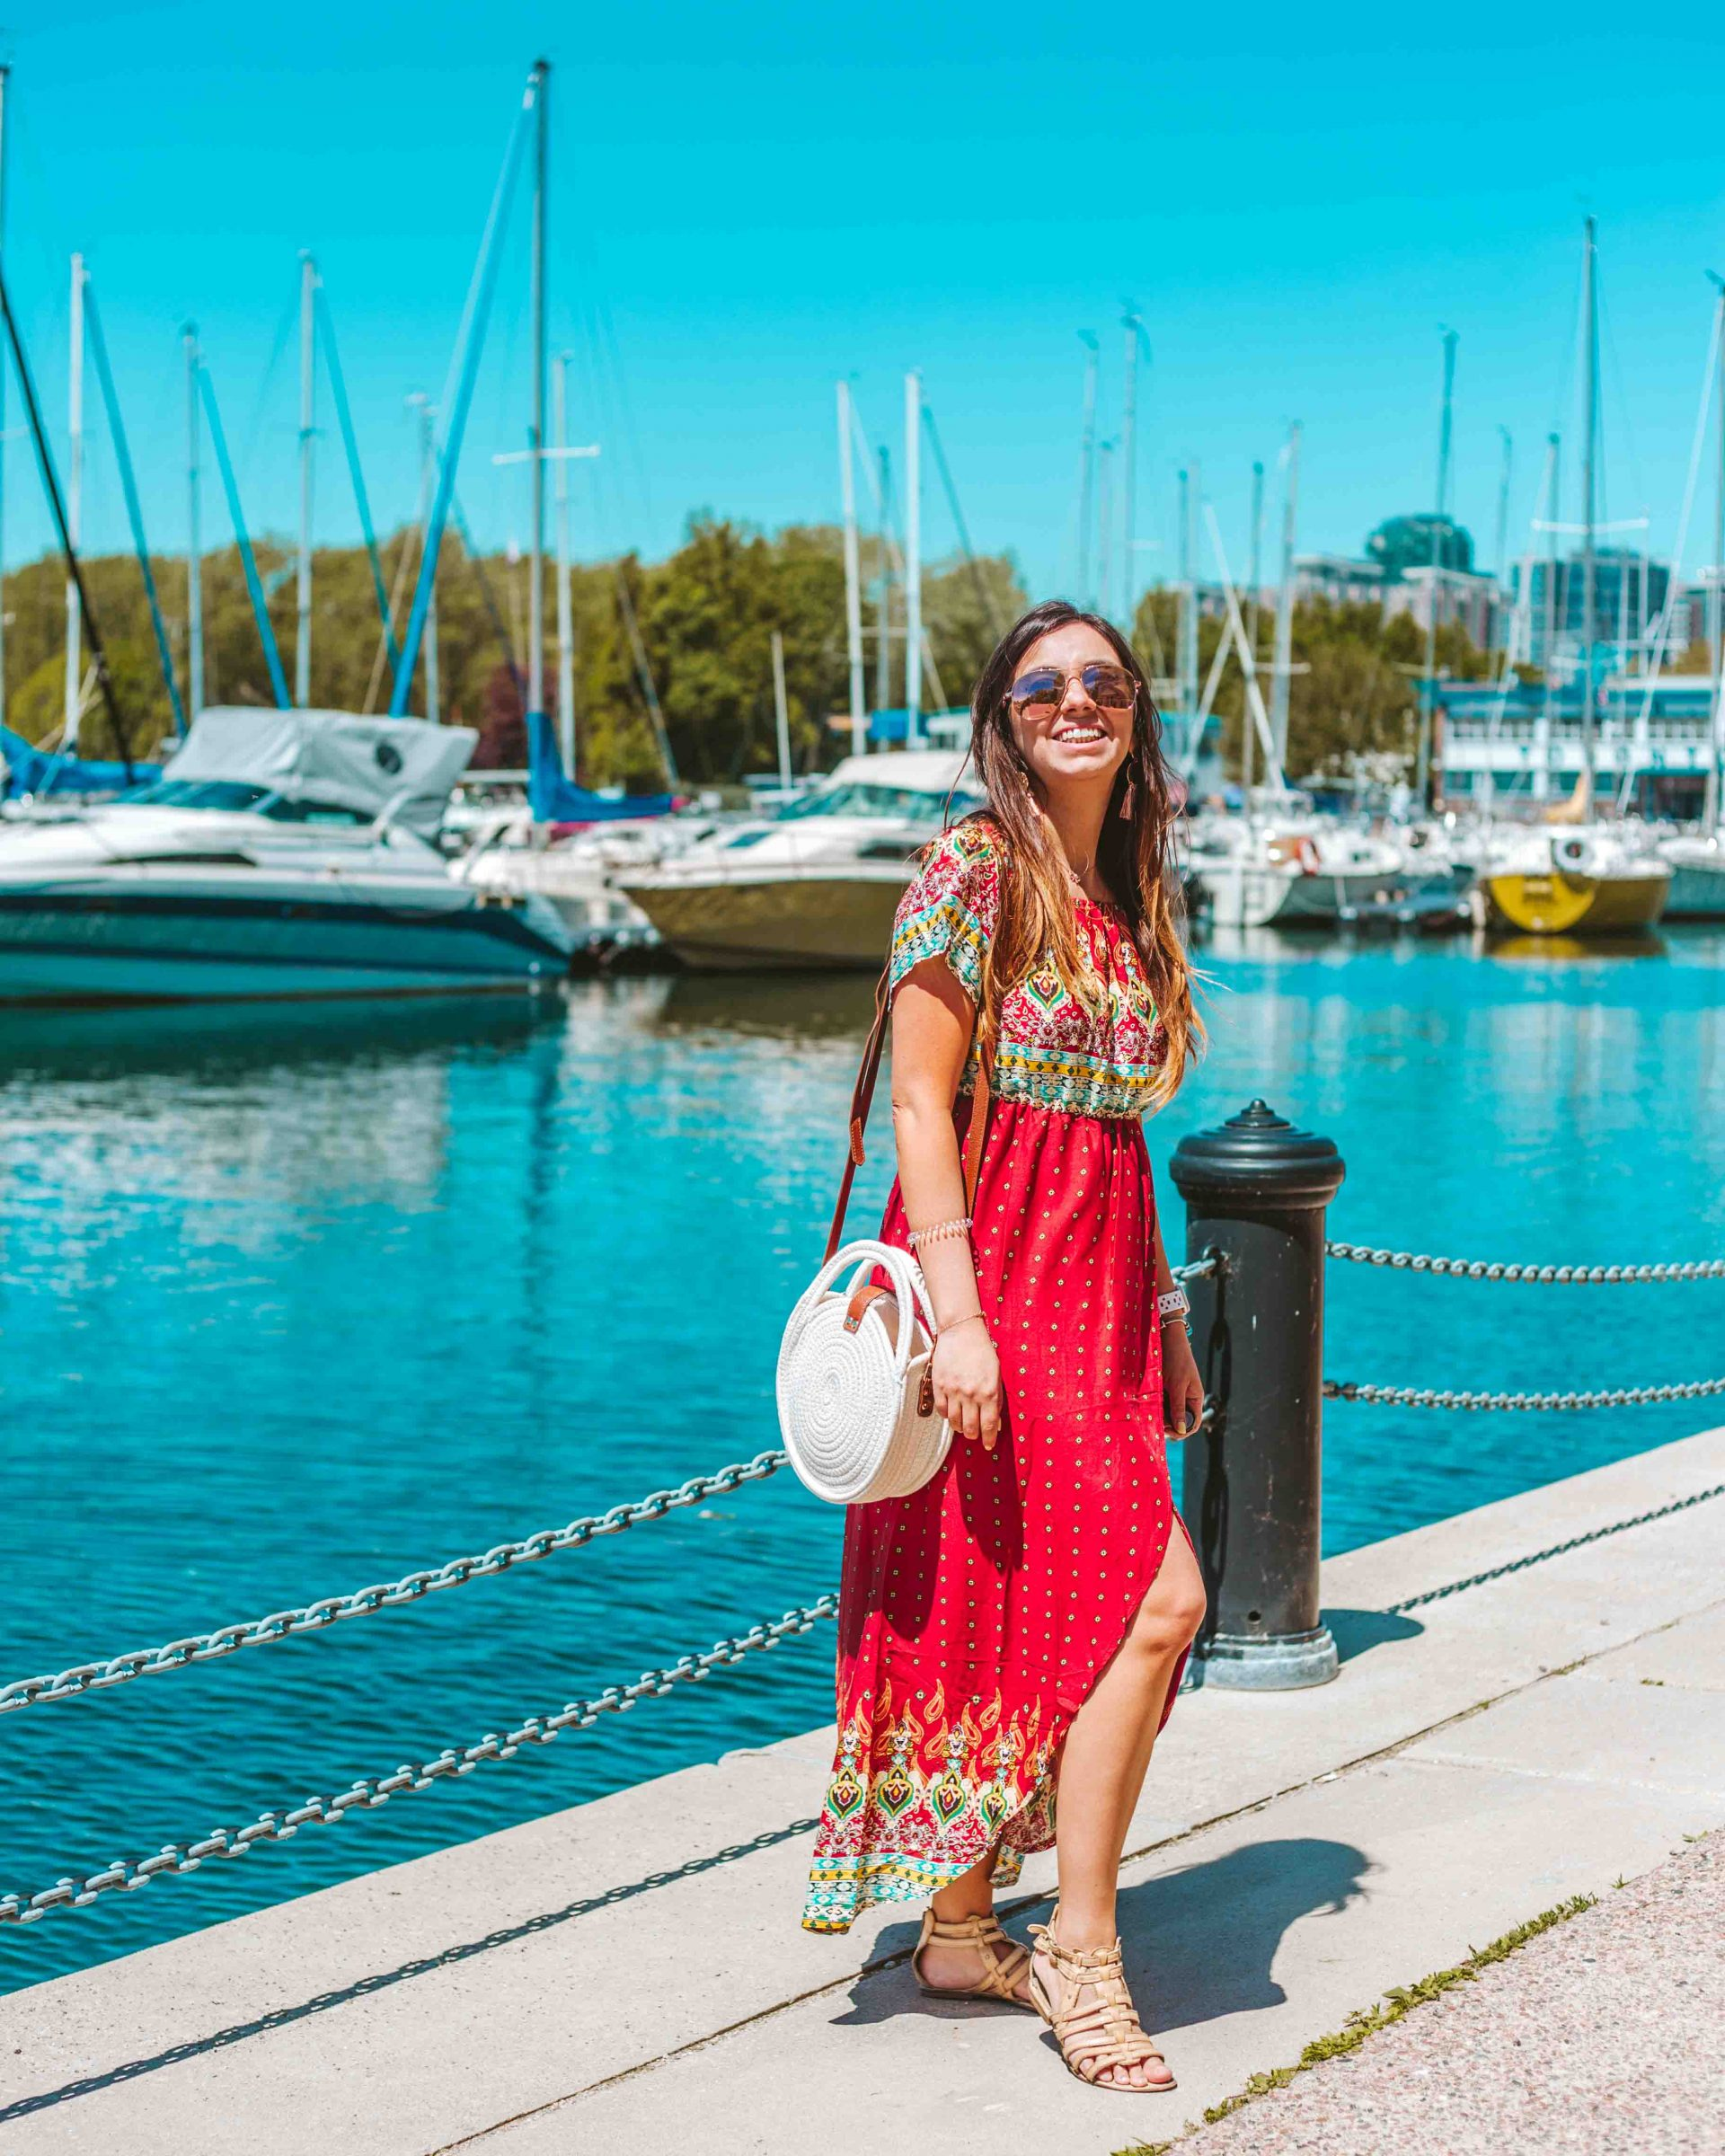 Outfit of the Day: Red Maxi Dress and Straw Bag